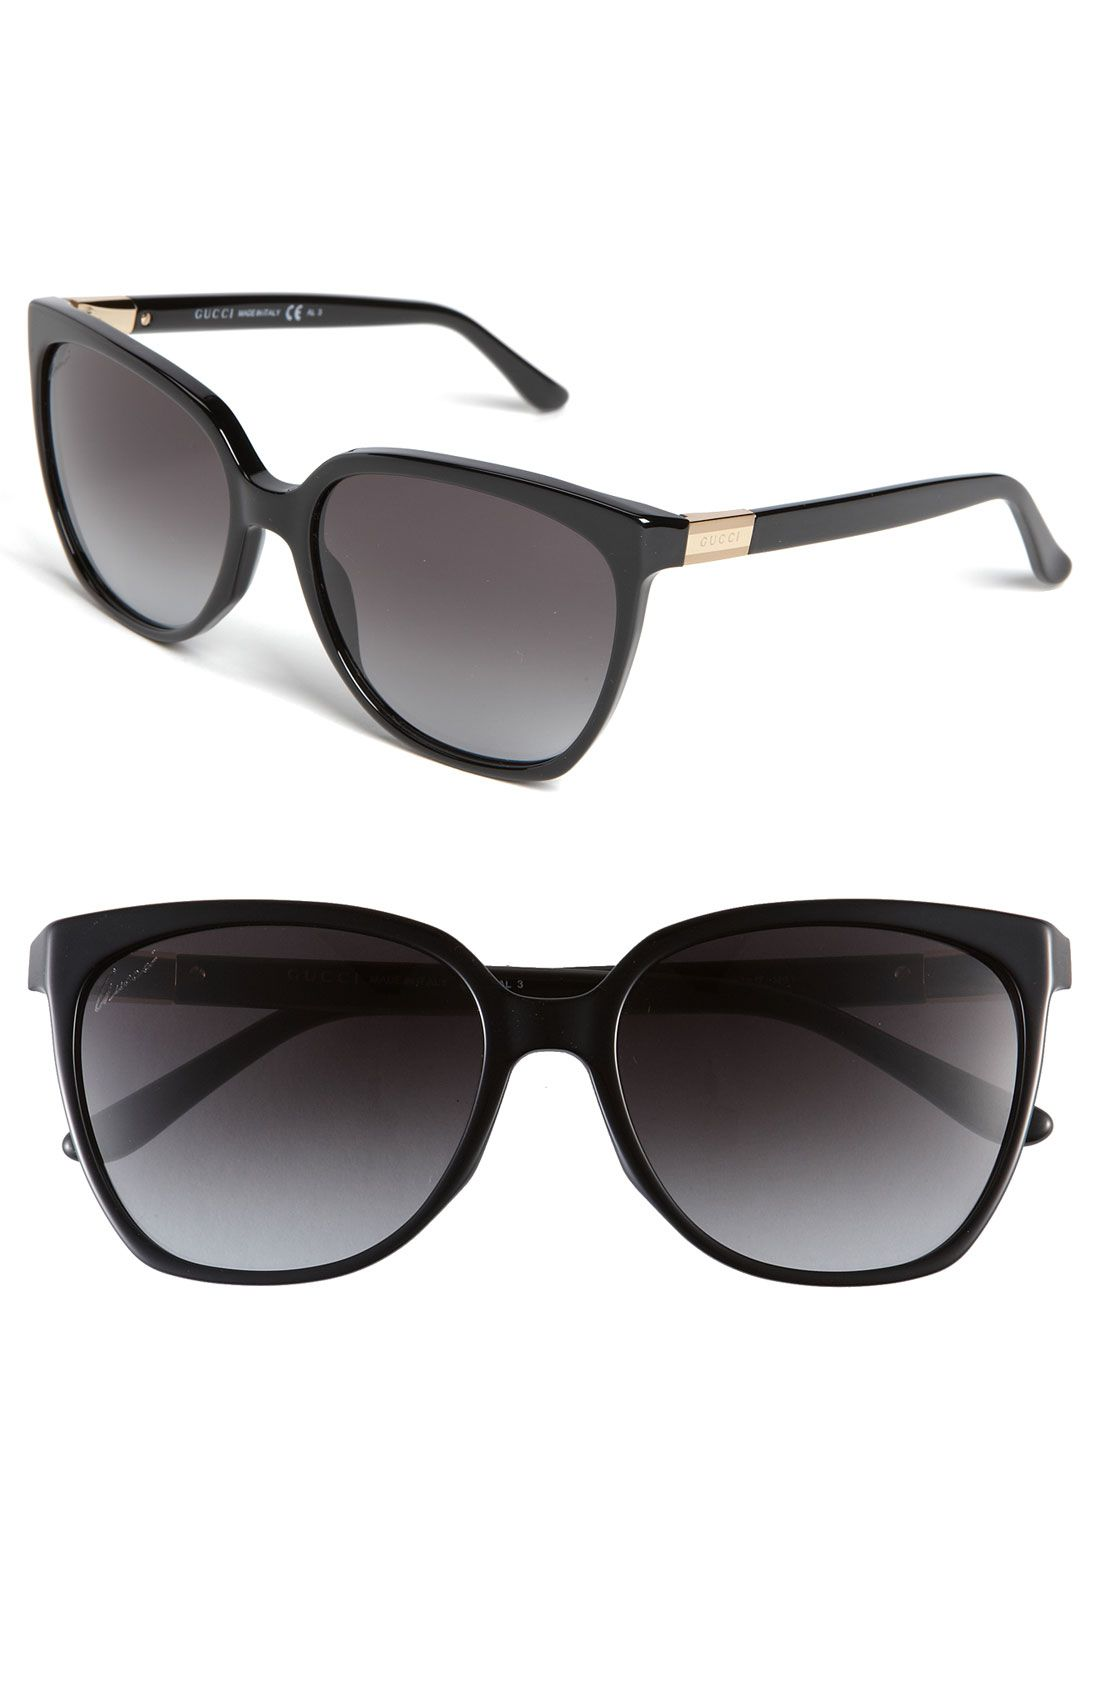 cb00d78c5e Gucci 57mm Oversized Sunglasses - black OR havana  )